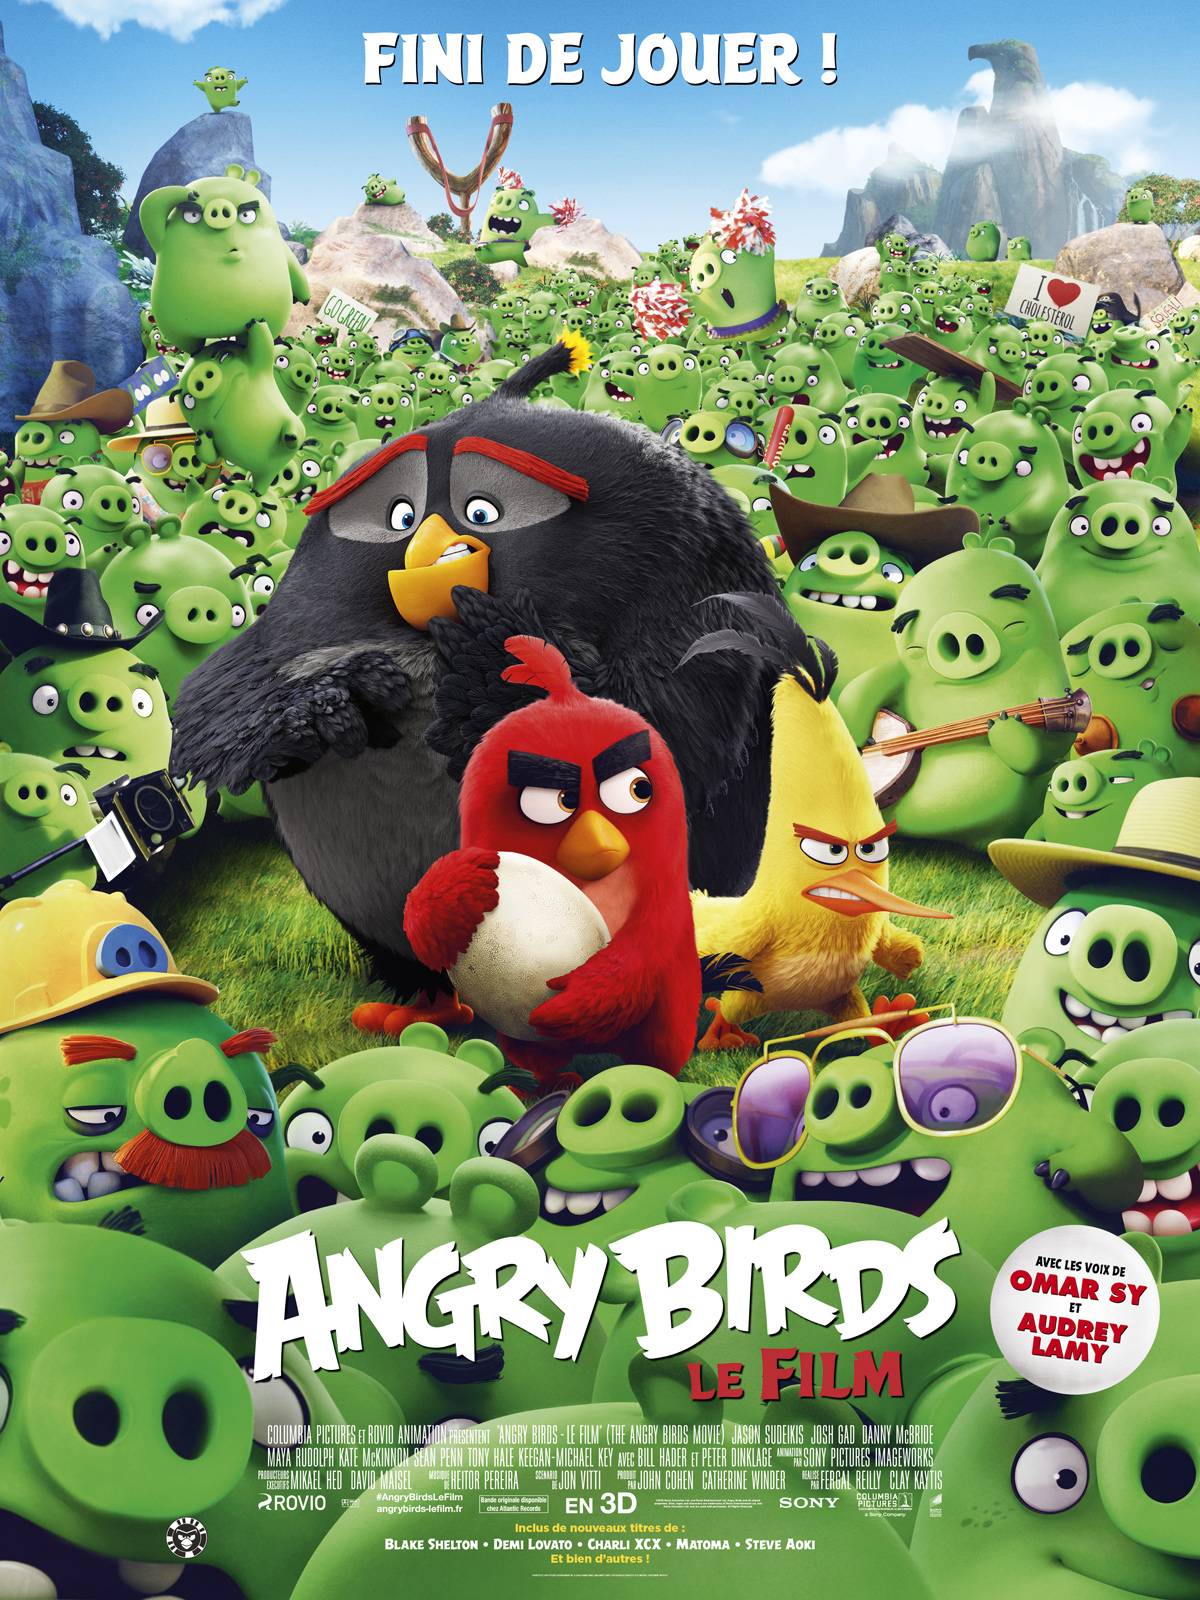 Angry Birds: Le Film DVD & BLU-RAY